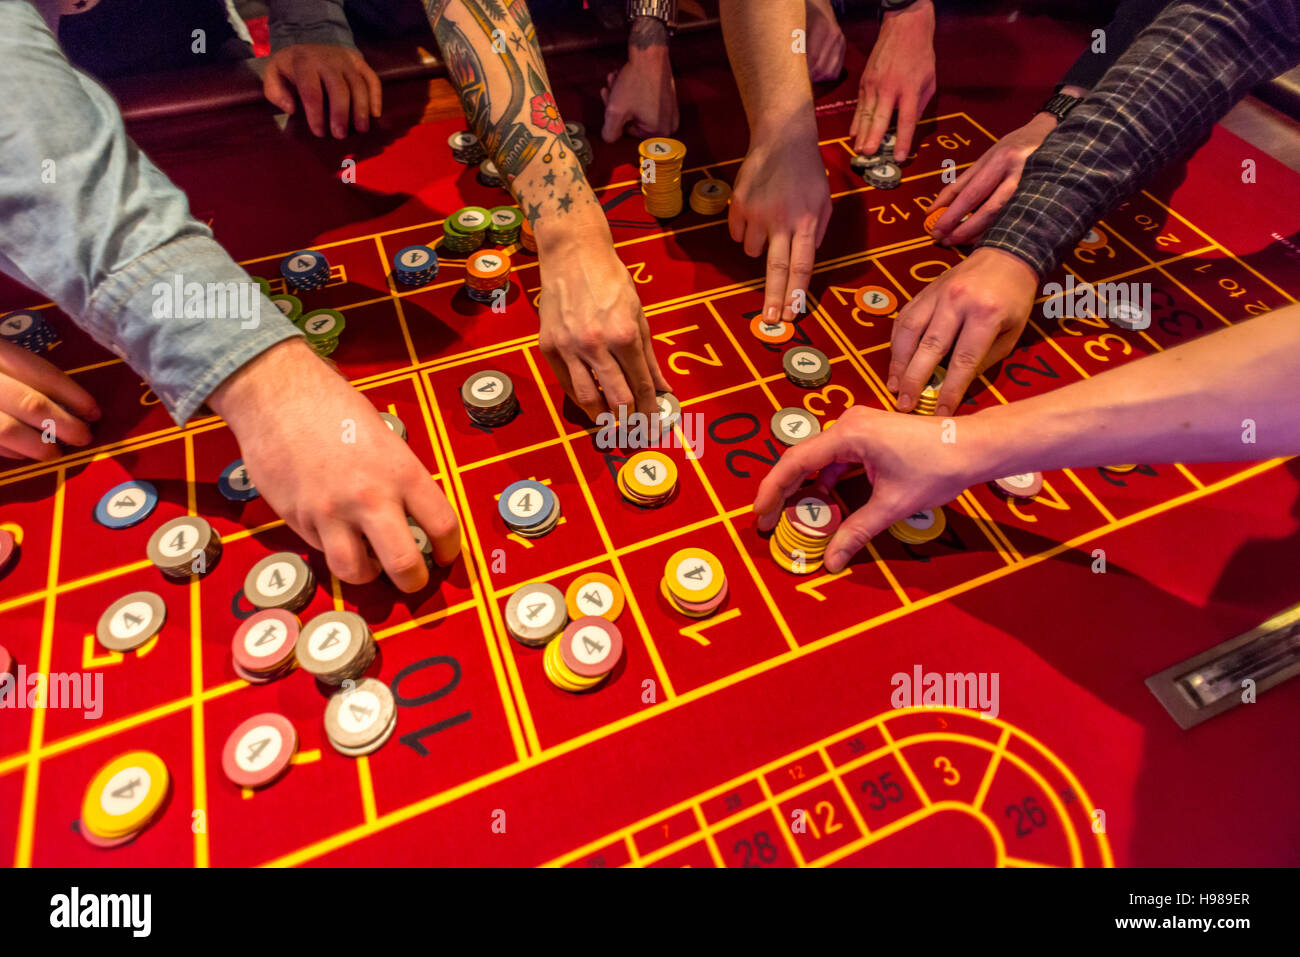 Young men on a night out gambling and playing roulette - Stock Image